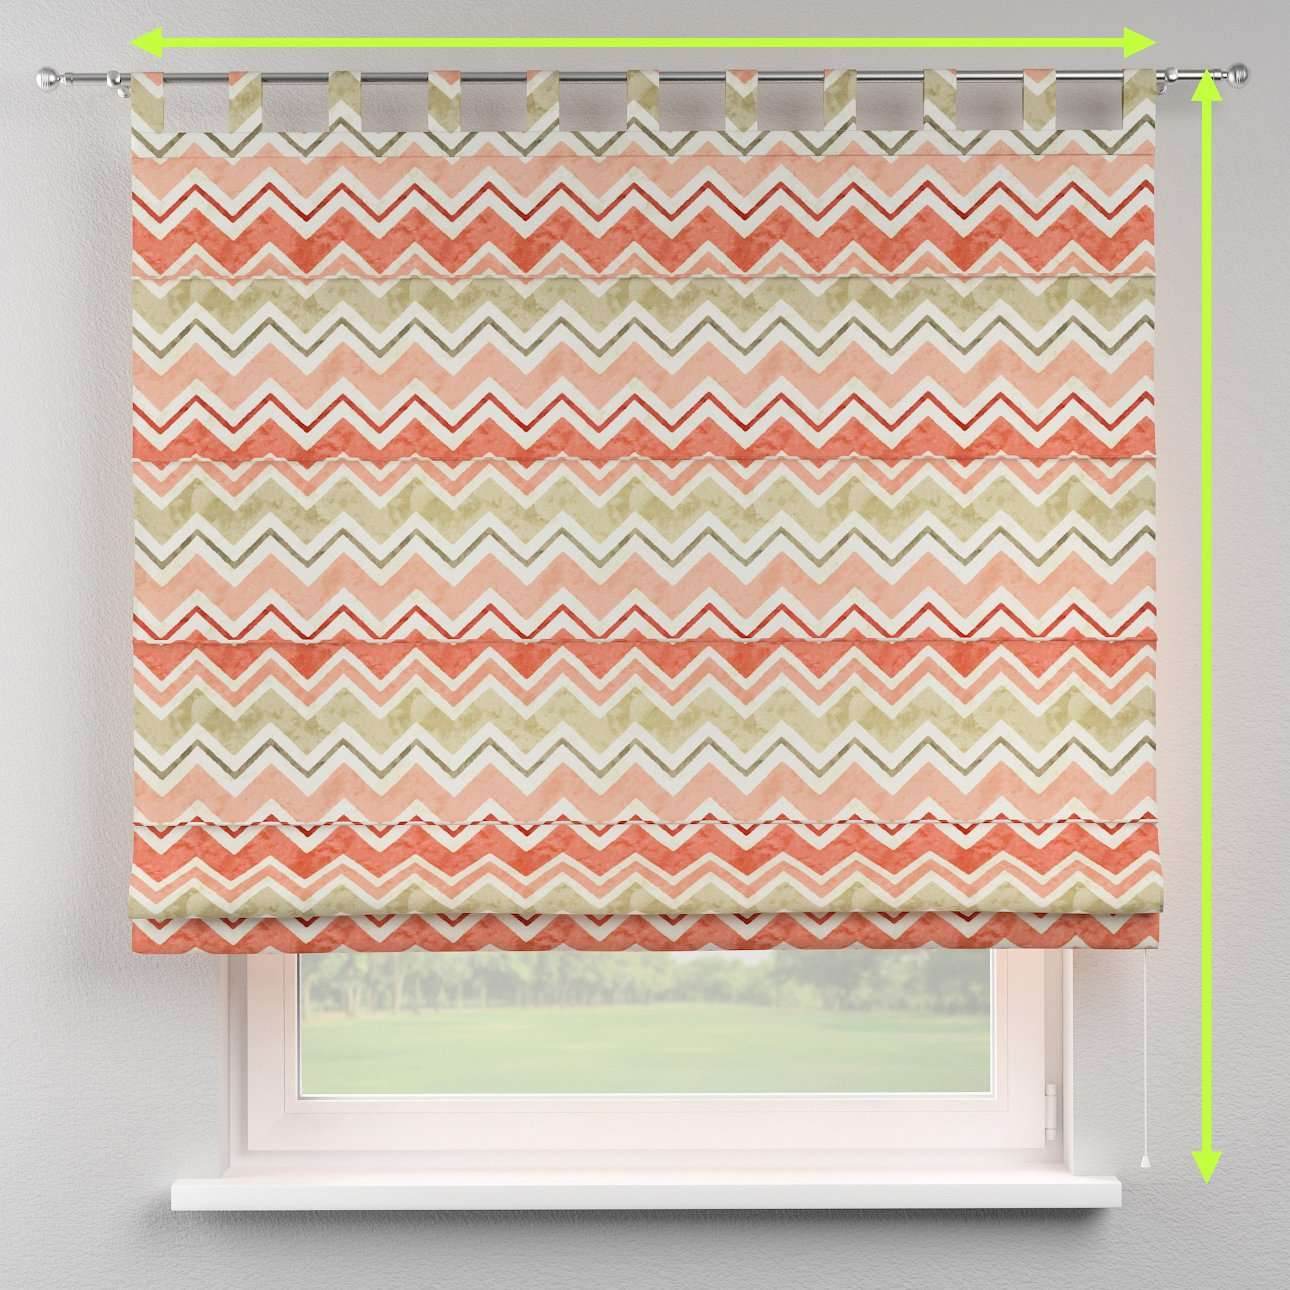 Verona tab top roman blind in collection Acapulco, fabric: 141-40